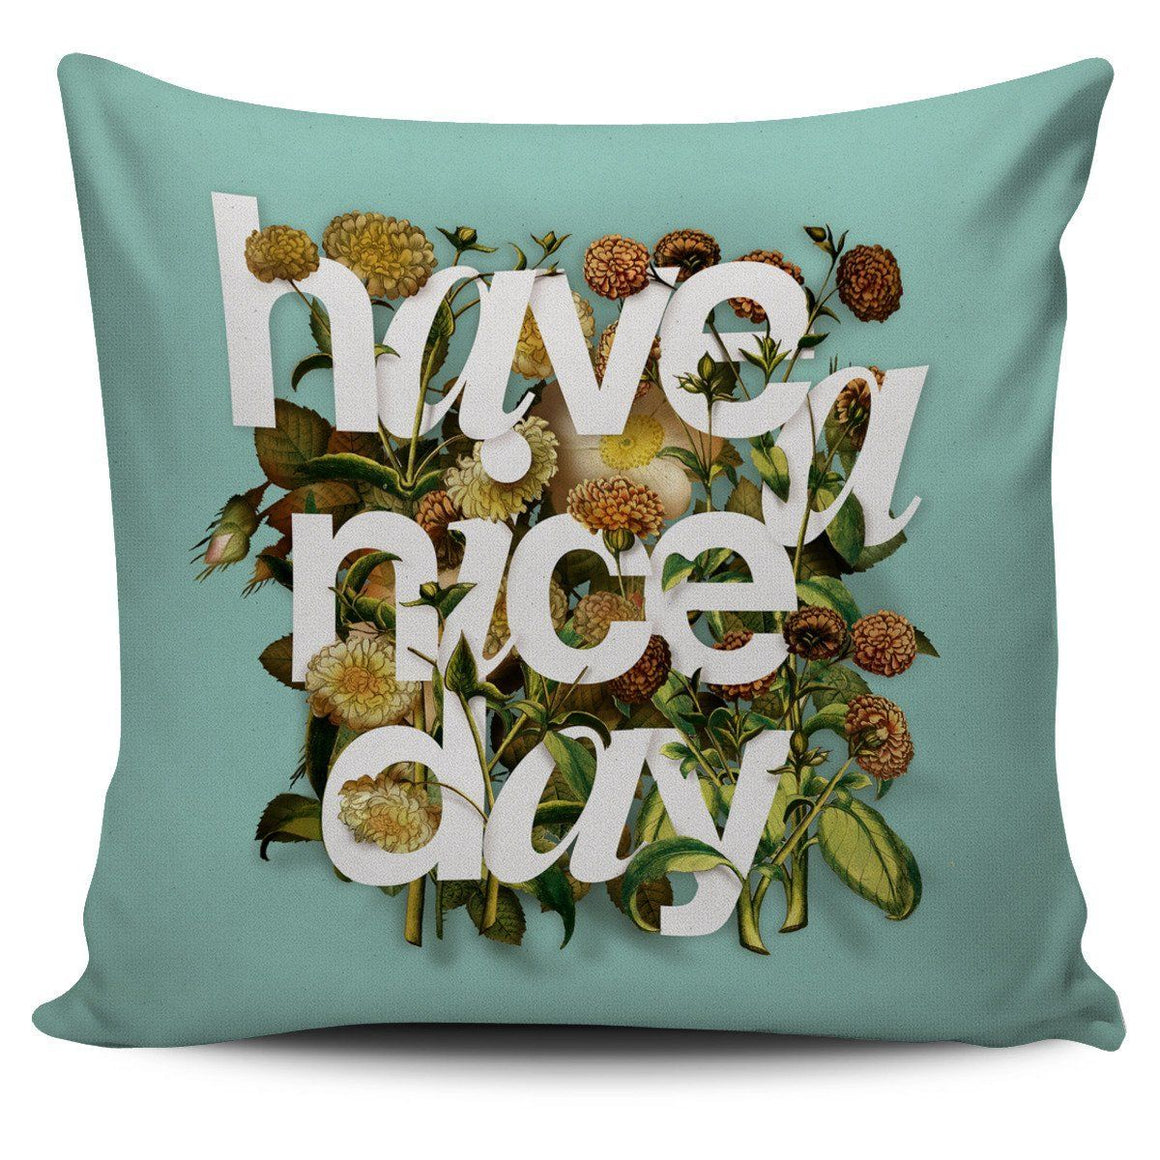 Flower Typography Happy Day Pillow Cover